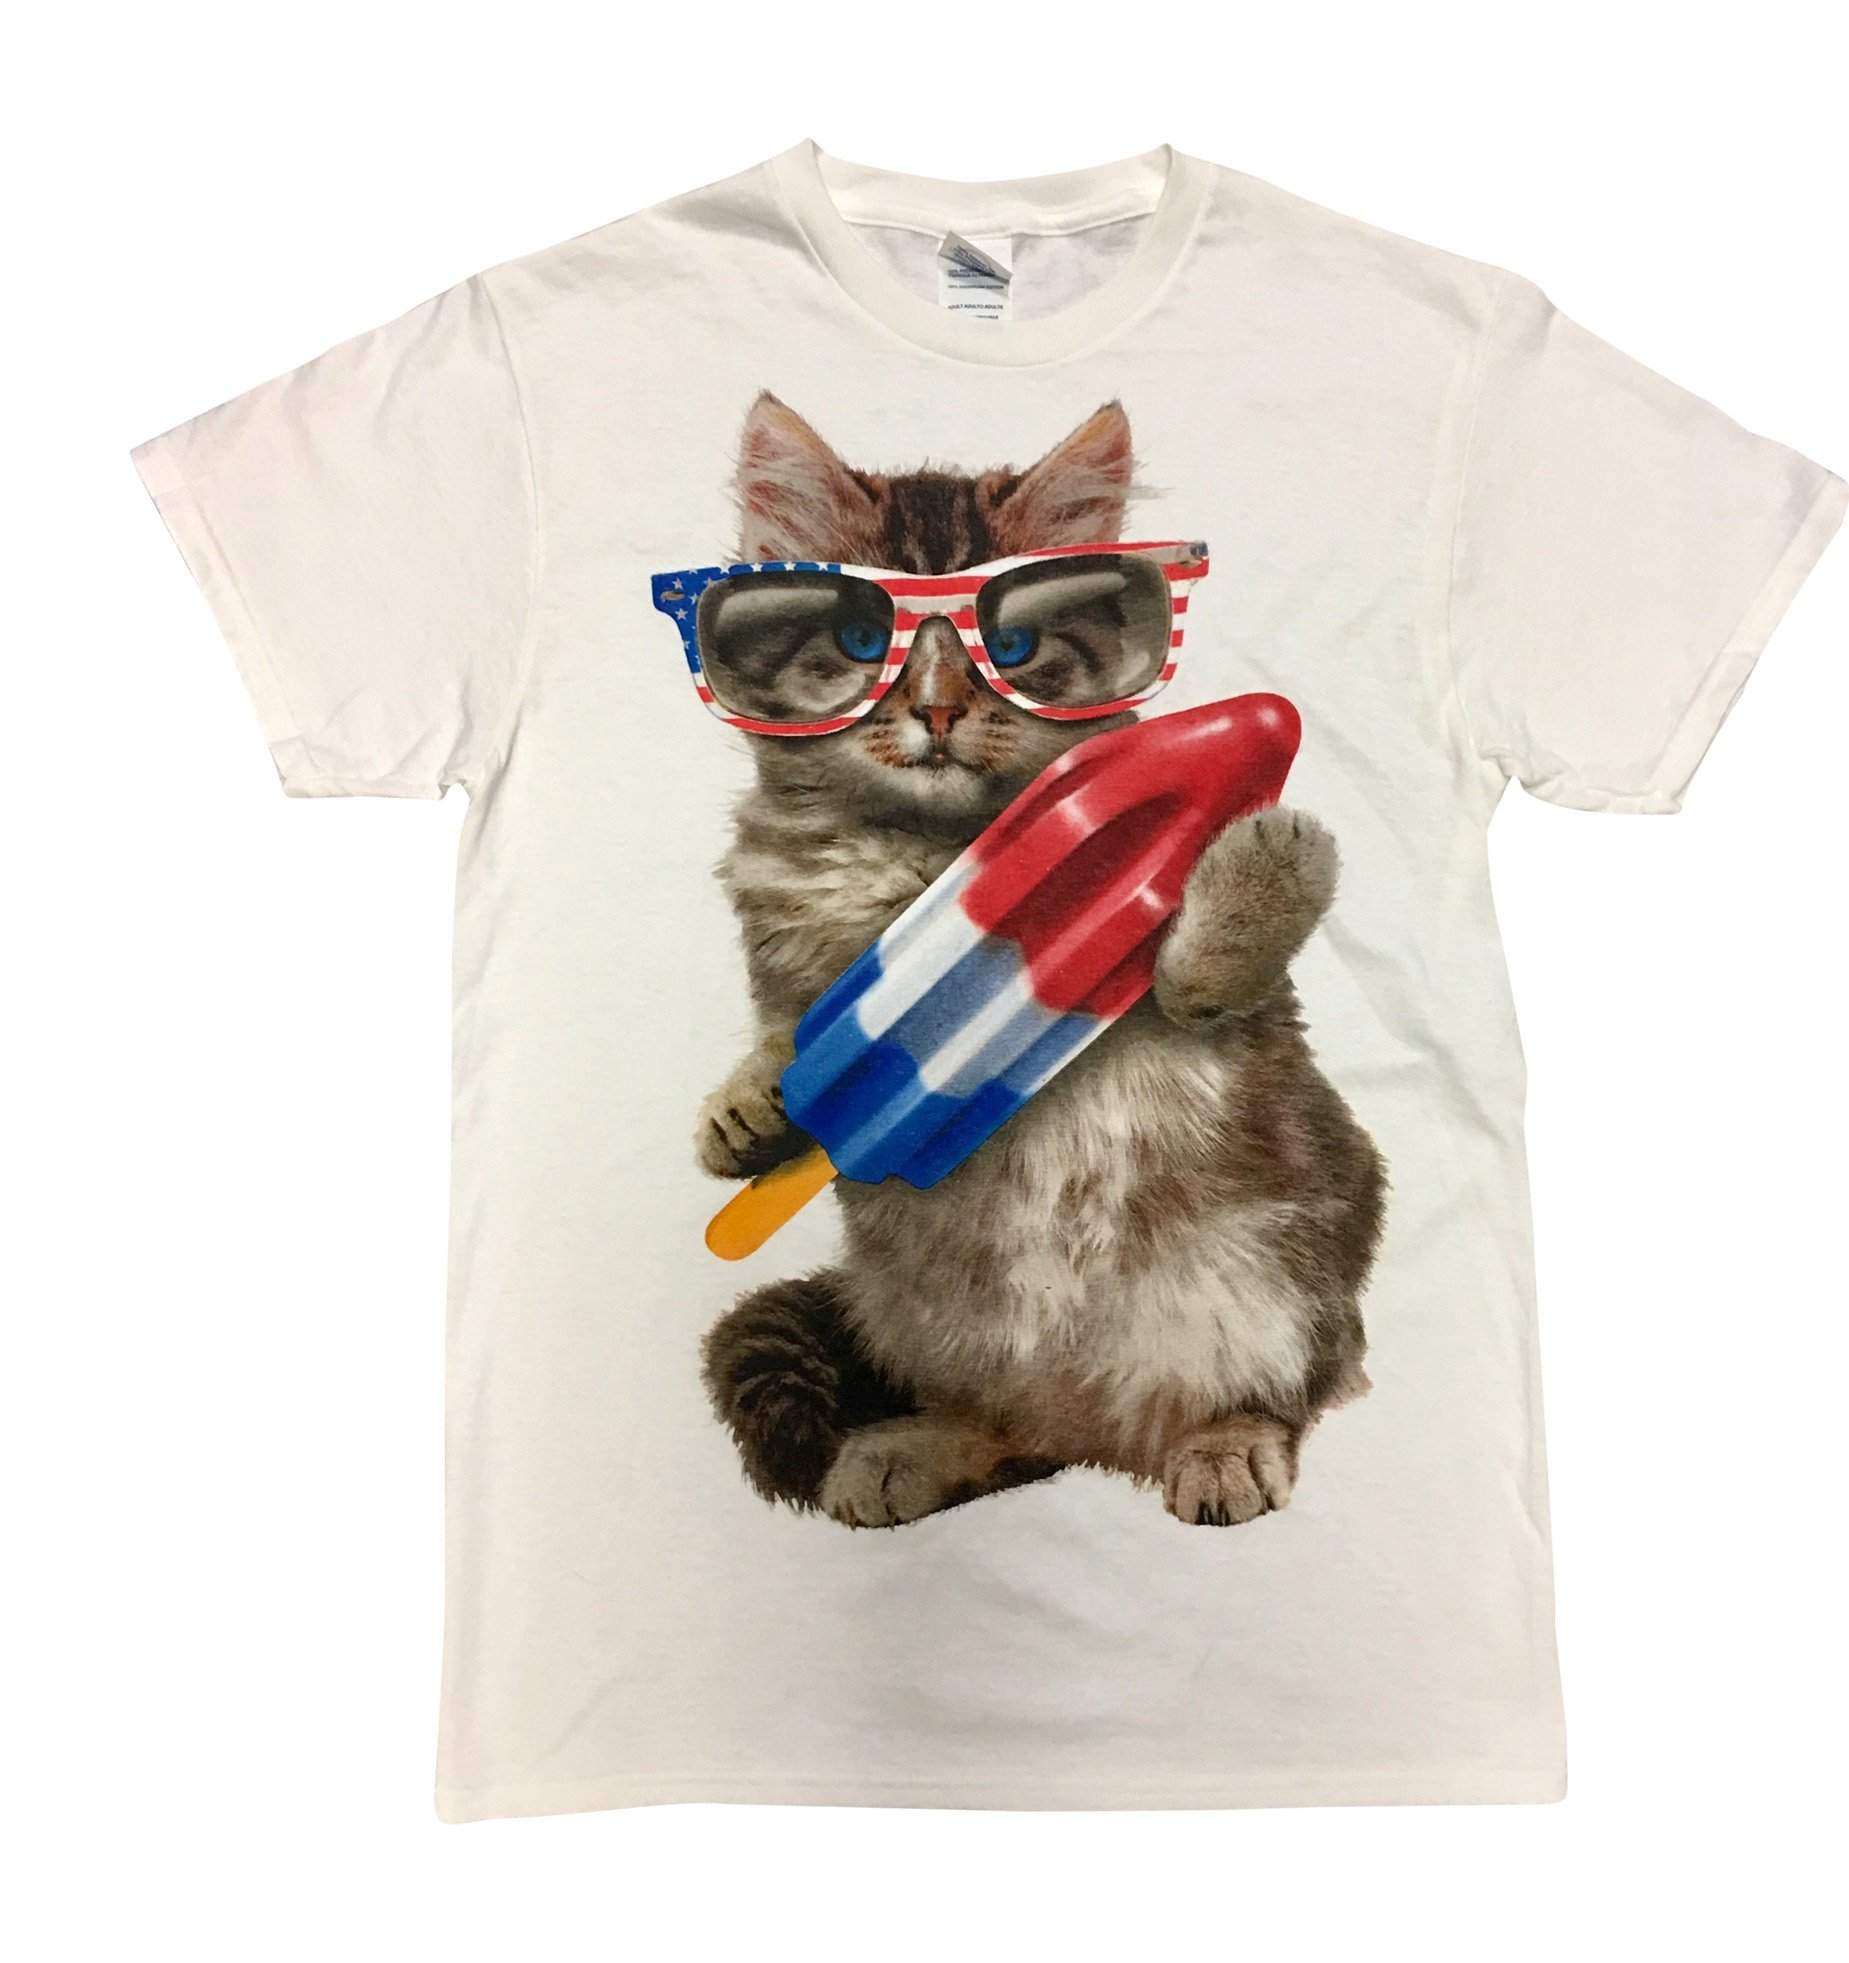 Mens Fourth of July Patriotic Kitty with Sunglasses and Rocket Popsicle - Medium/38-40